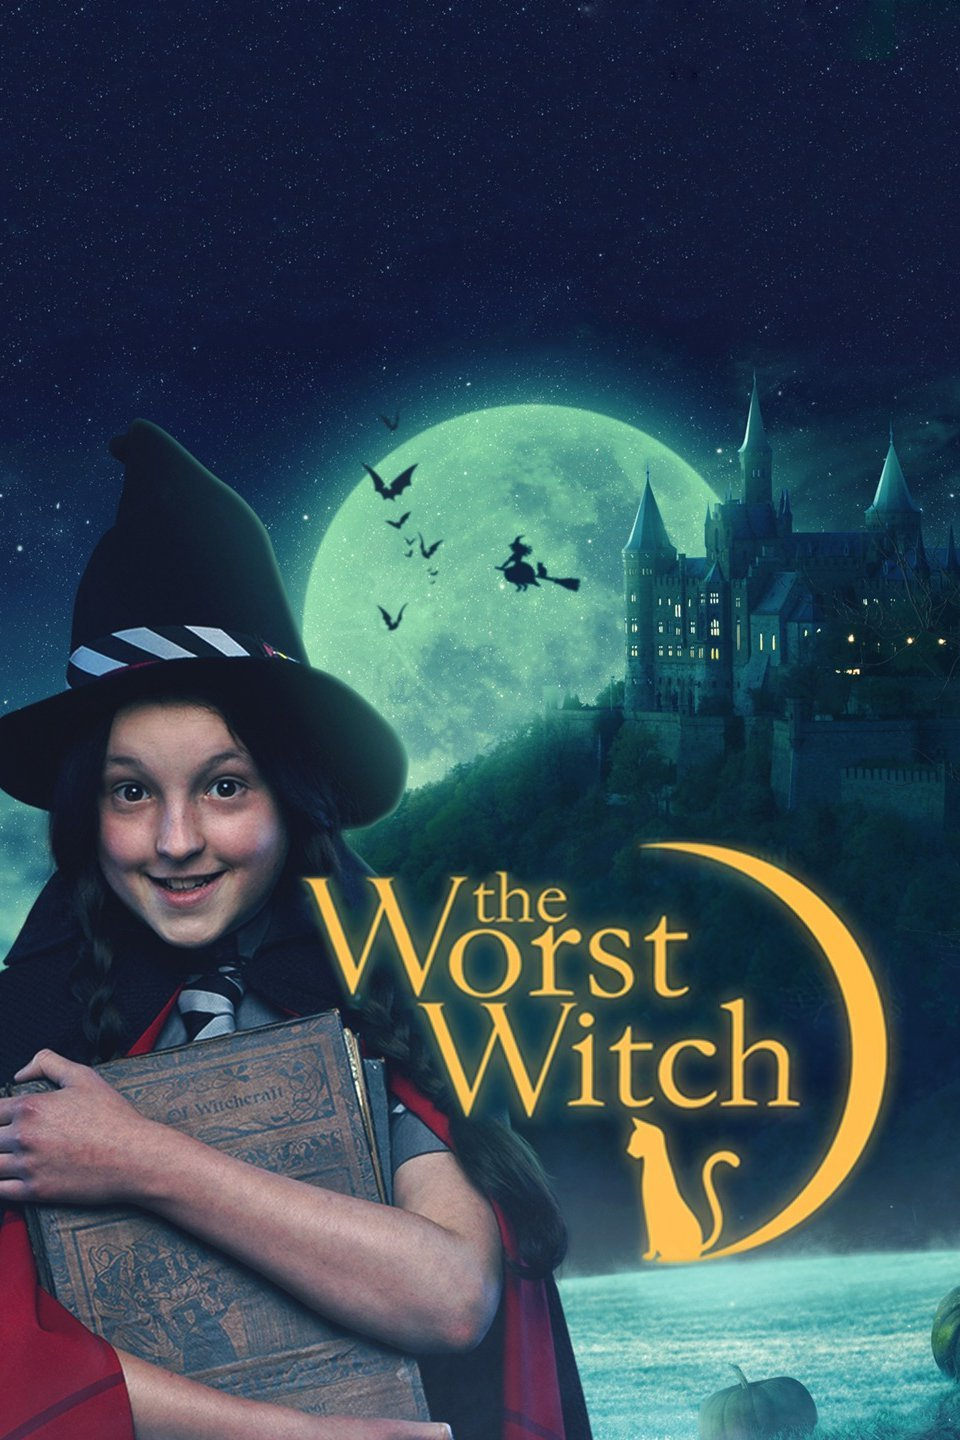 The Worst Witch S01 E02